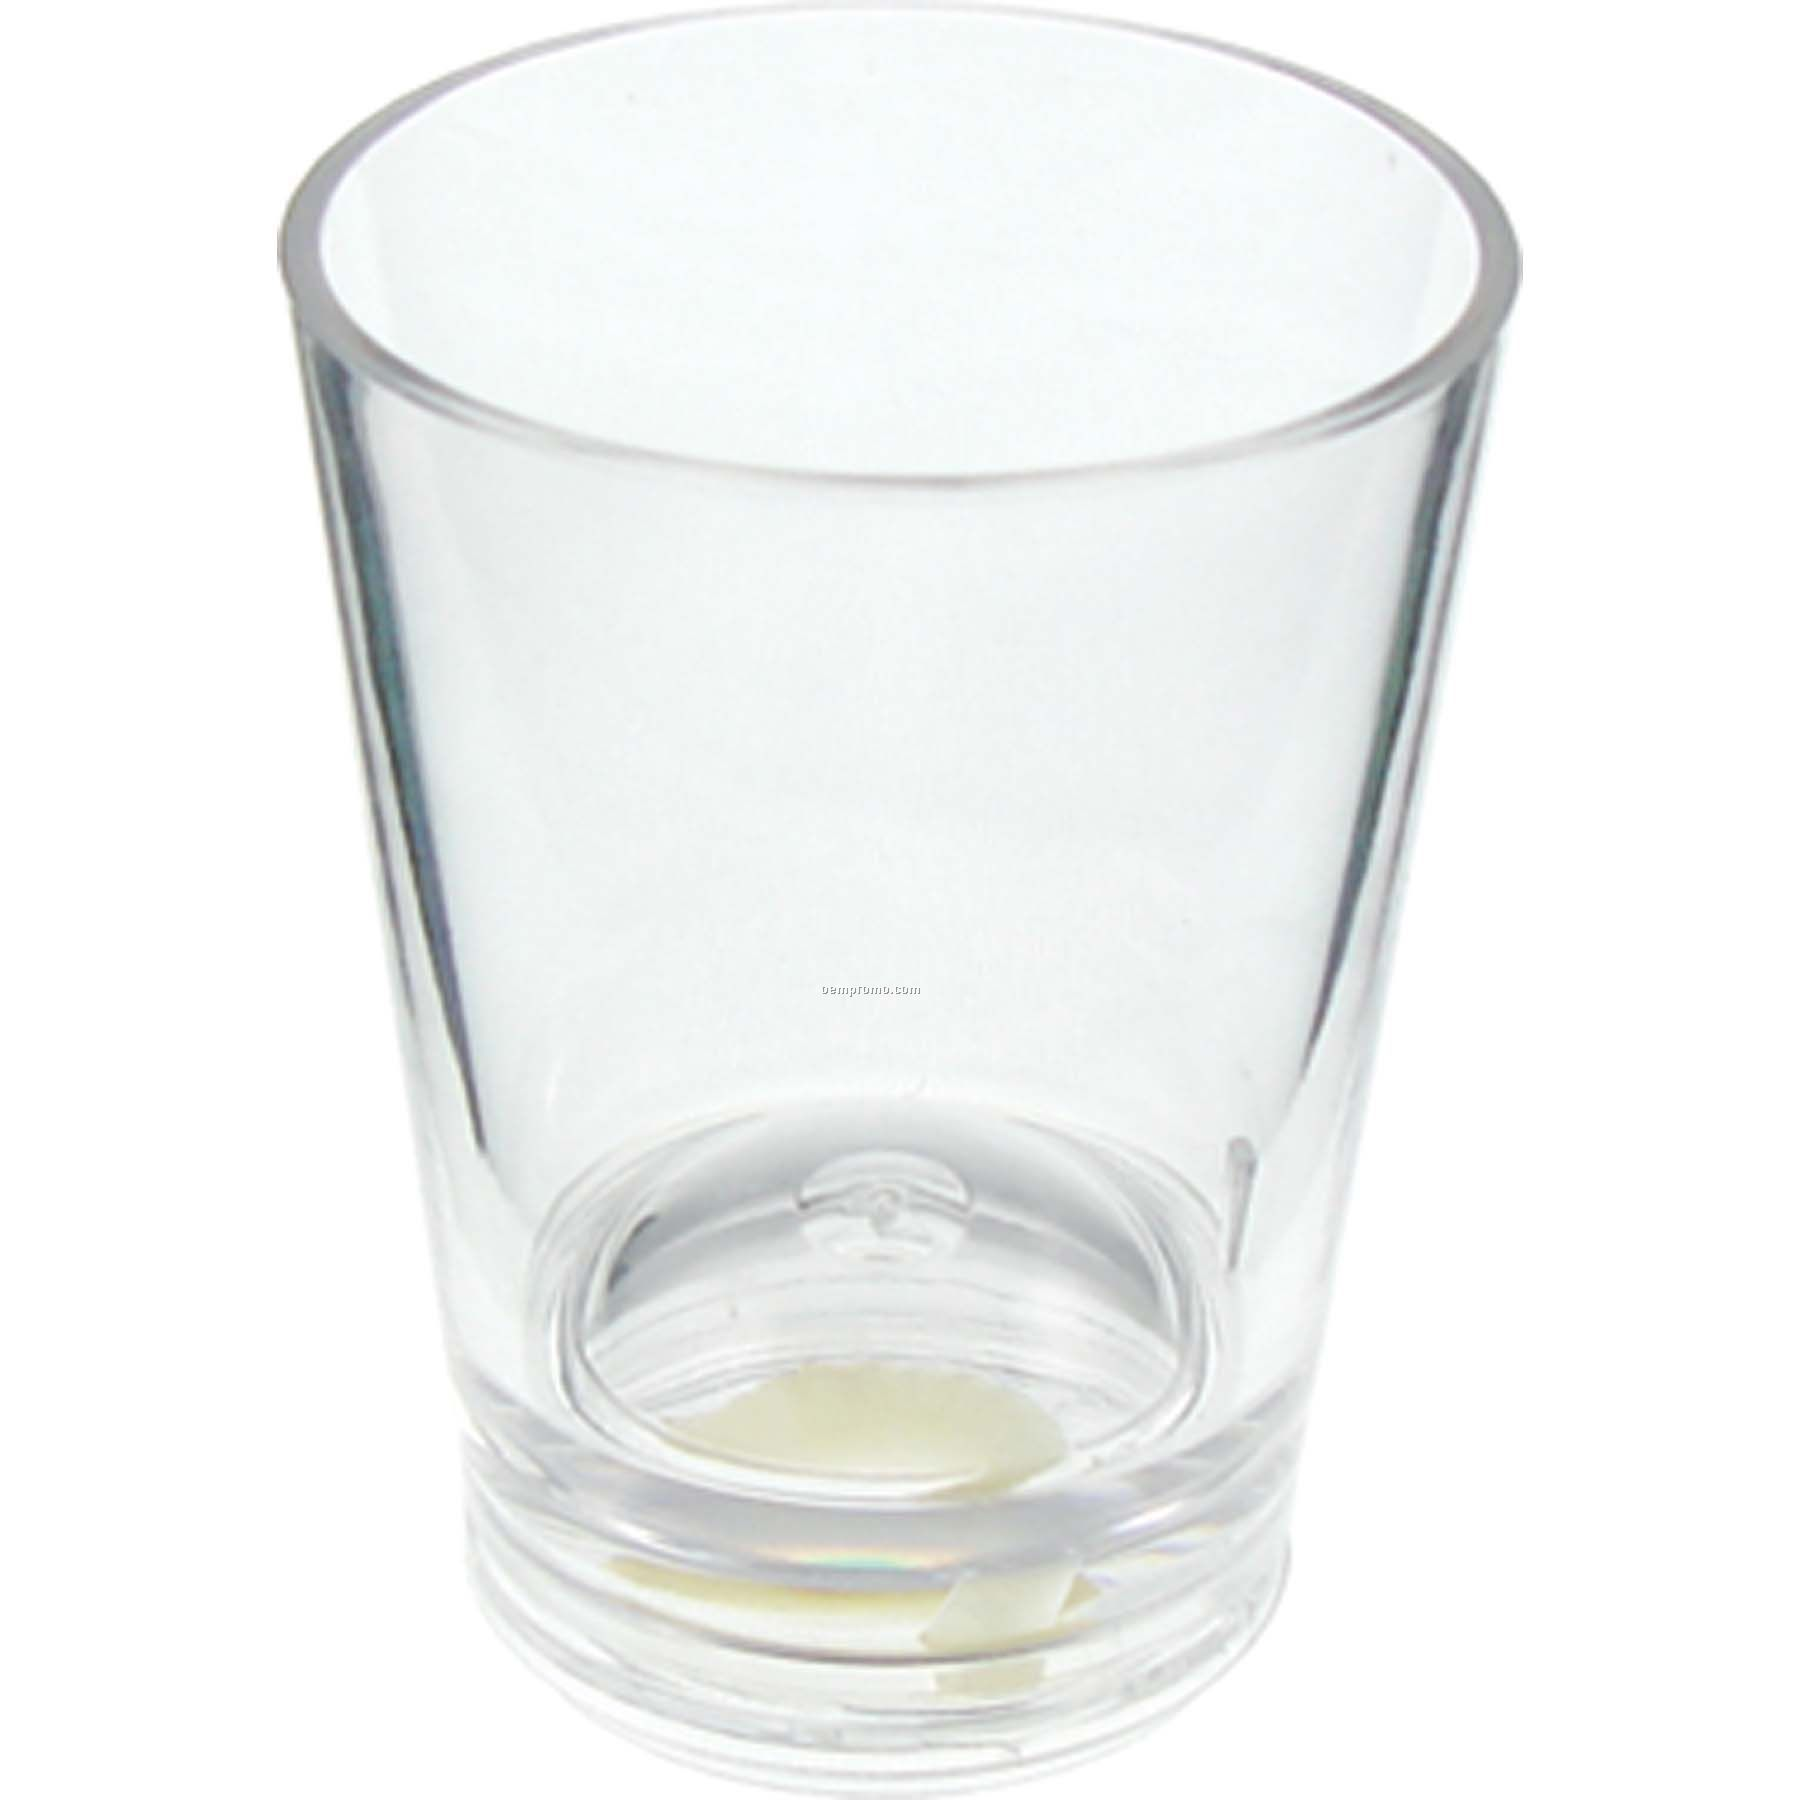 Unbreakable Plastic Shot Glass - 1.5 Oz. - Clearly Acrylic for